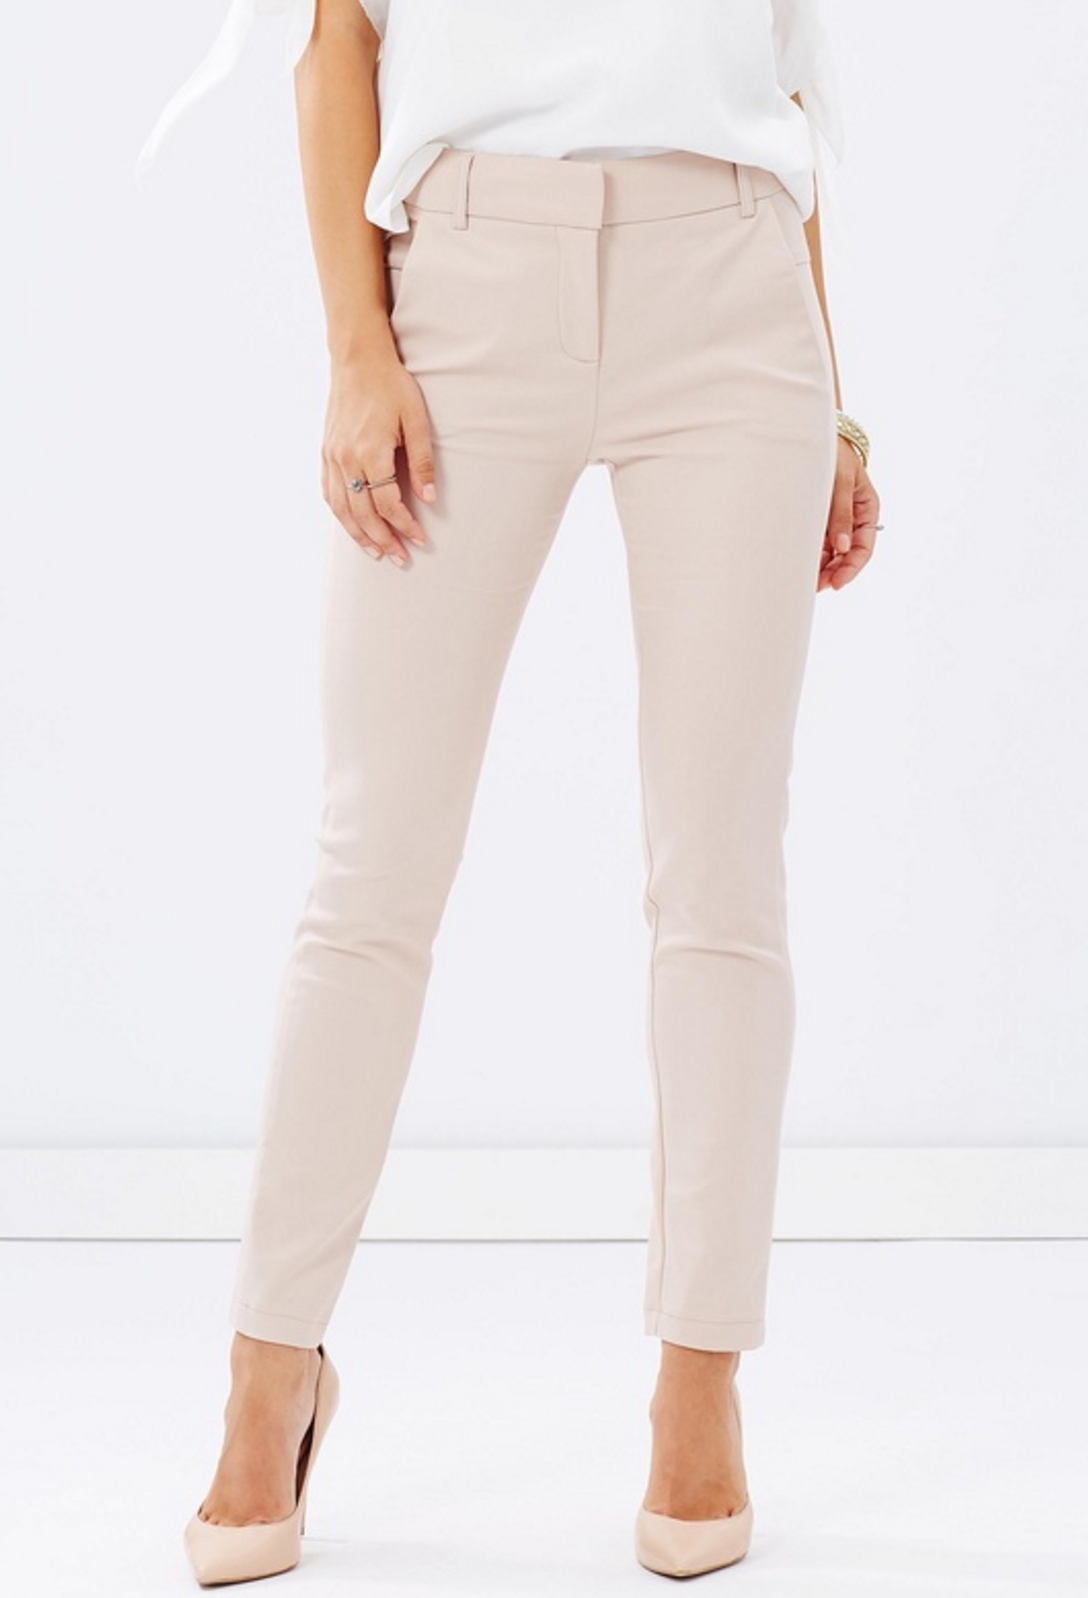 Forcast Madalyn fitted $69.95